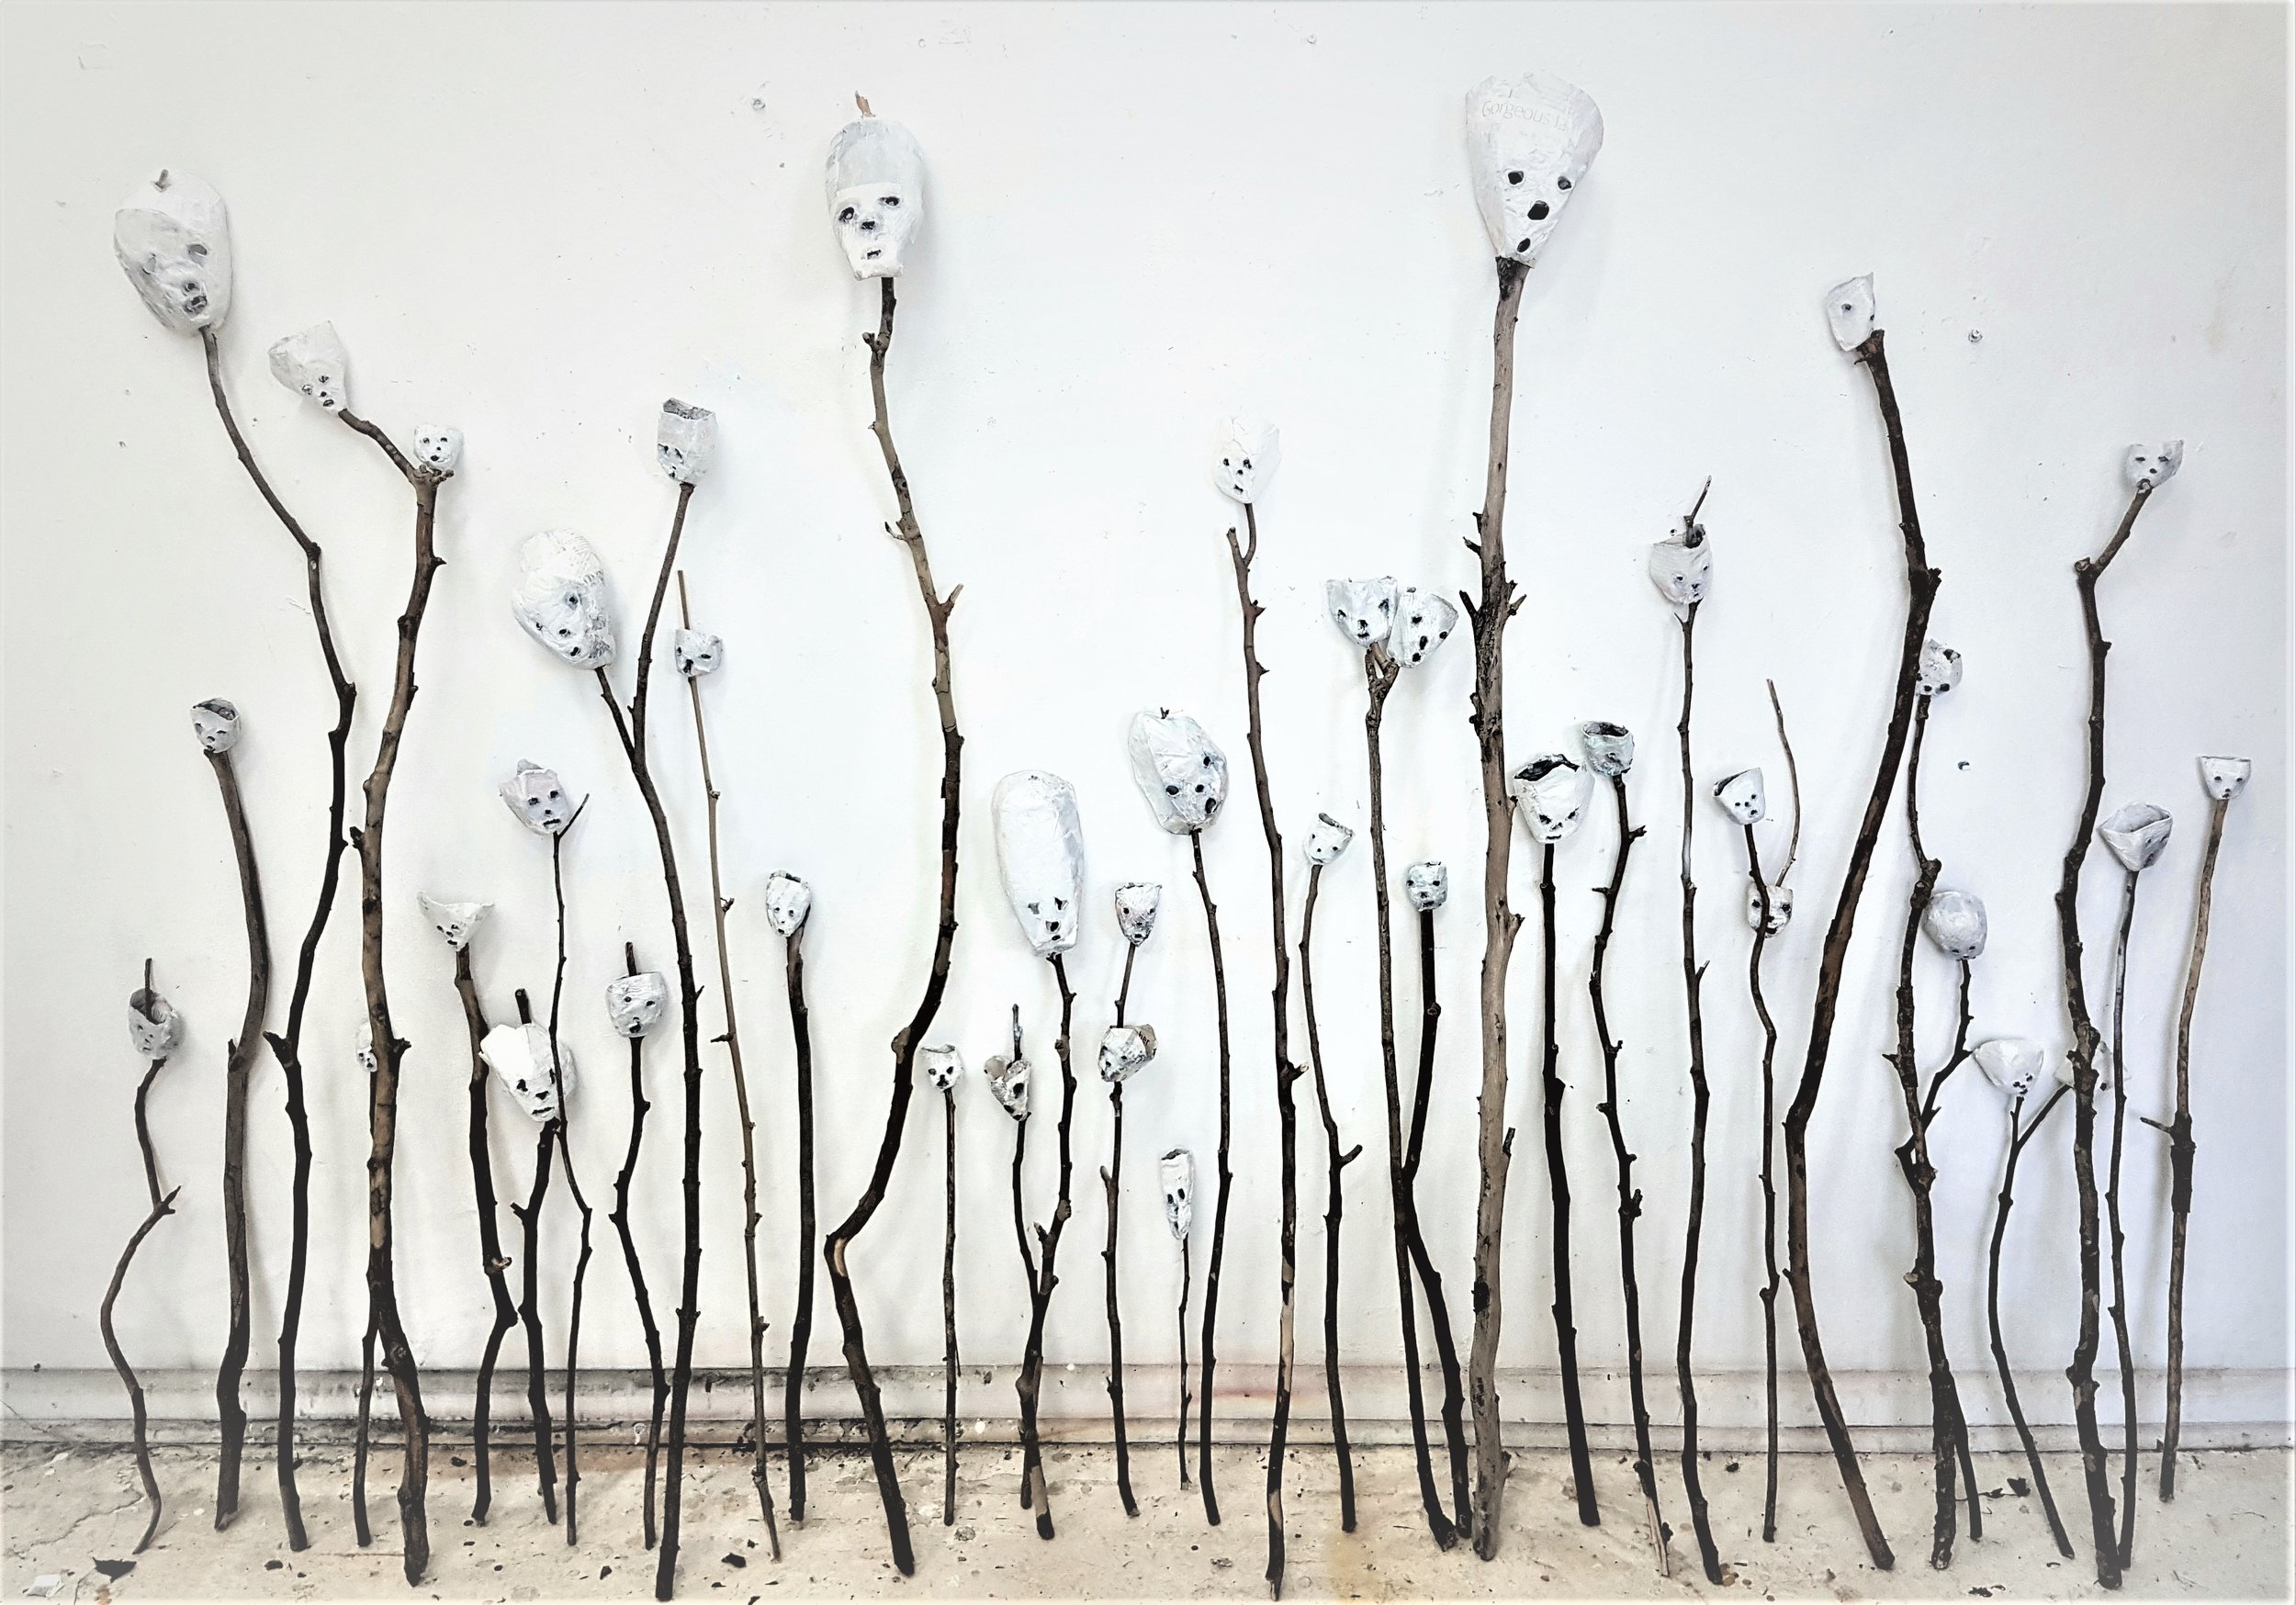 GABRIELLE BATES - Working with the DeadGALLERY TWO